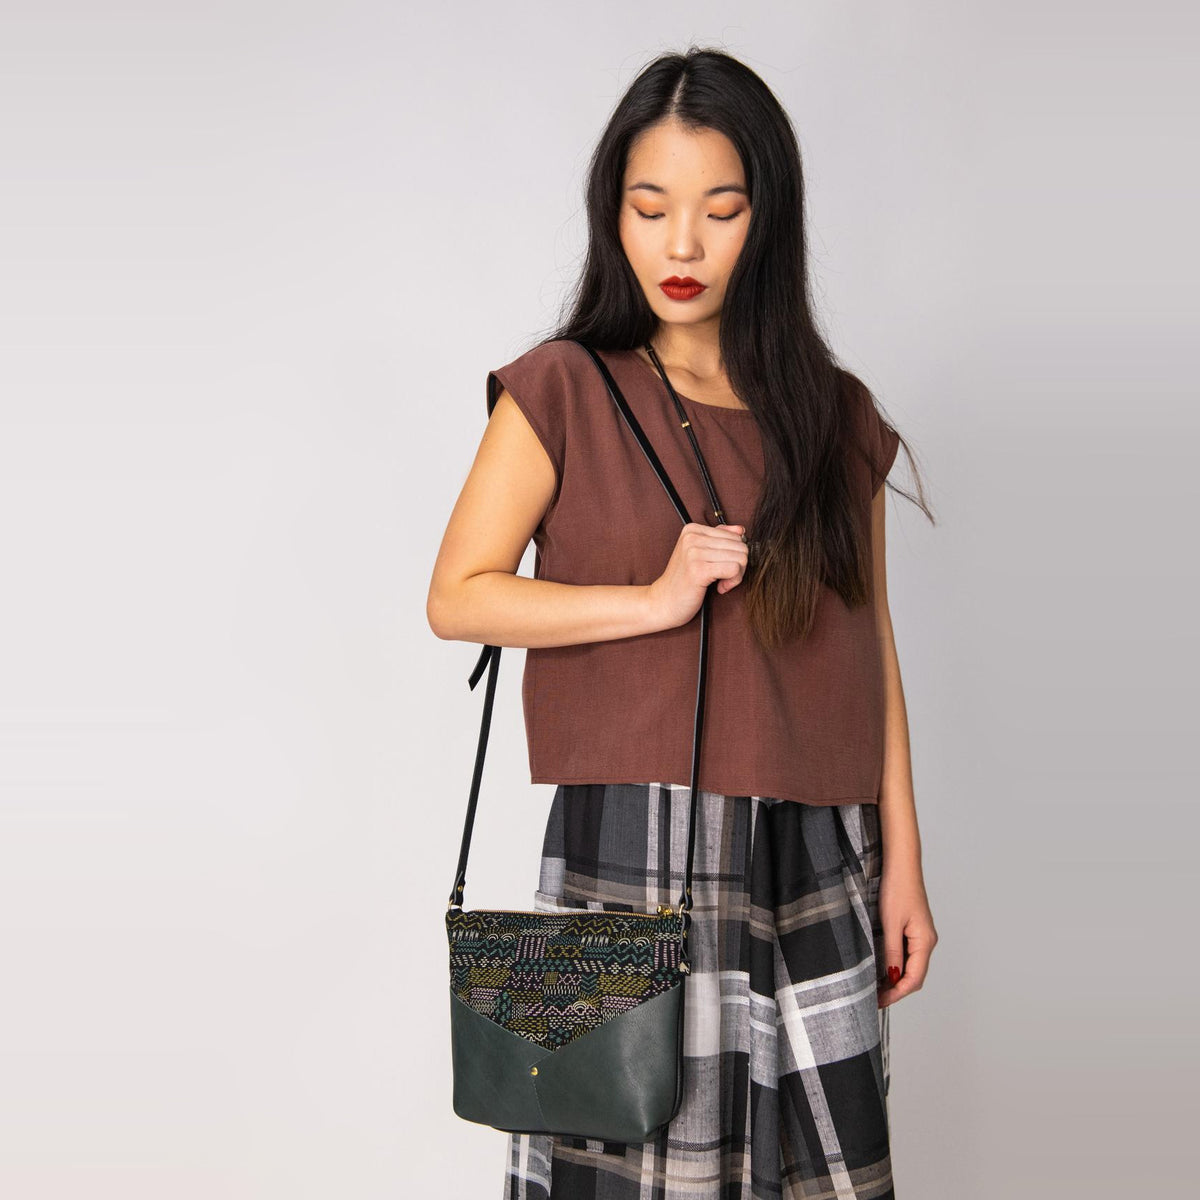 Model Wearing a Woodstock / Embroidery Fabric & Forest Leather - Small Bag